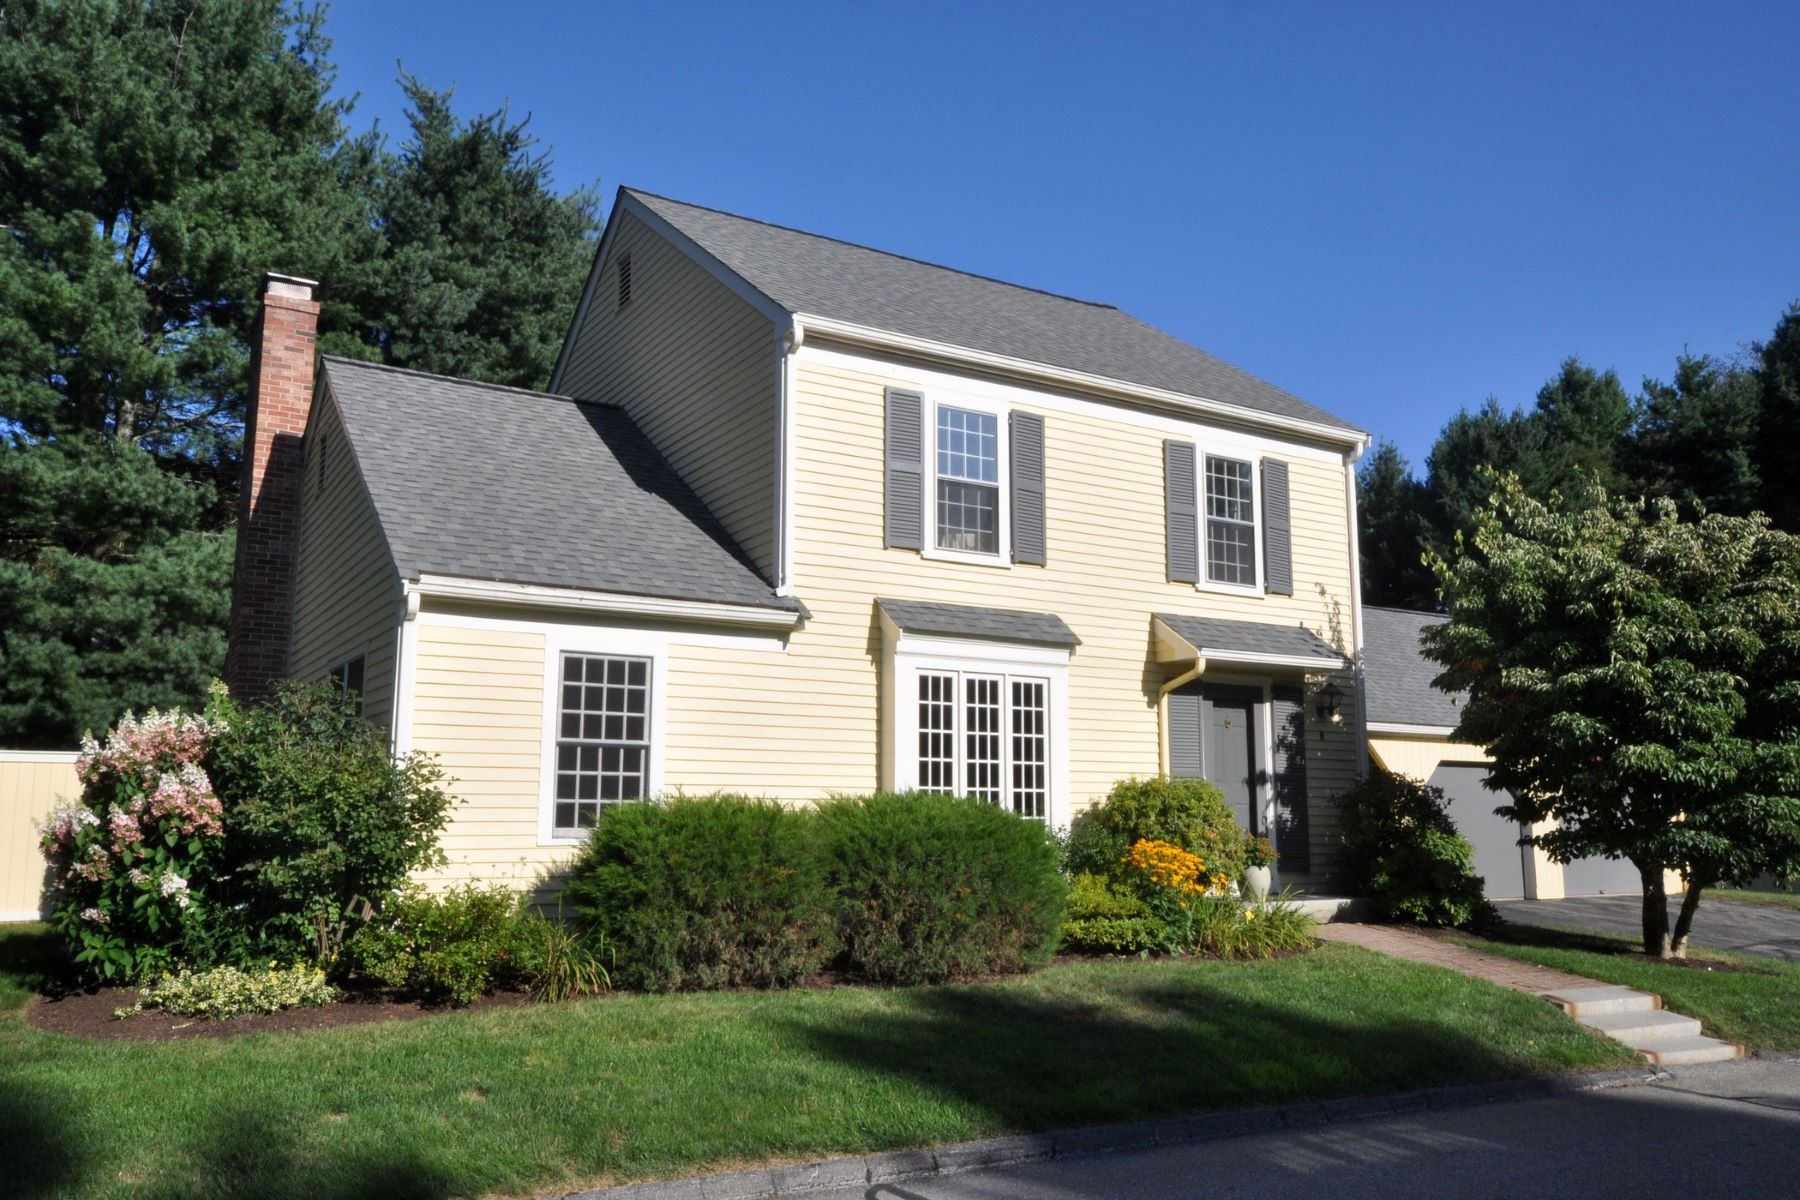 Single Family Homes for Sale at 8 Edmonds Road Concord, Massachusetts 01742 United States